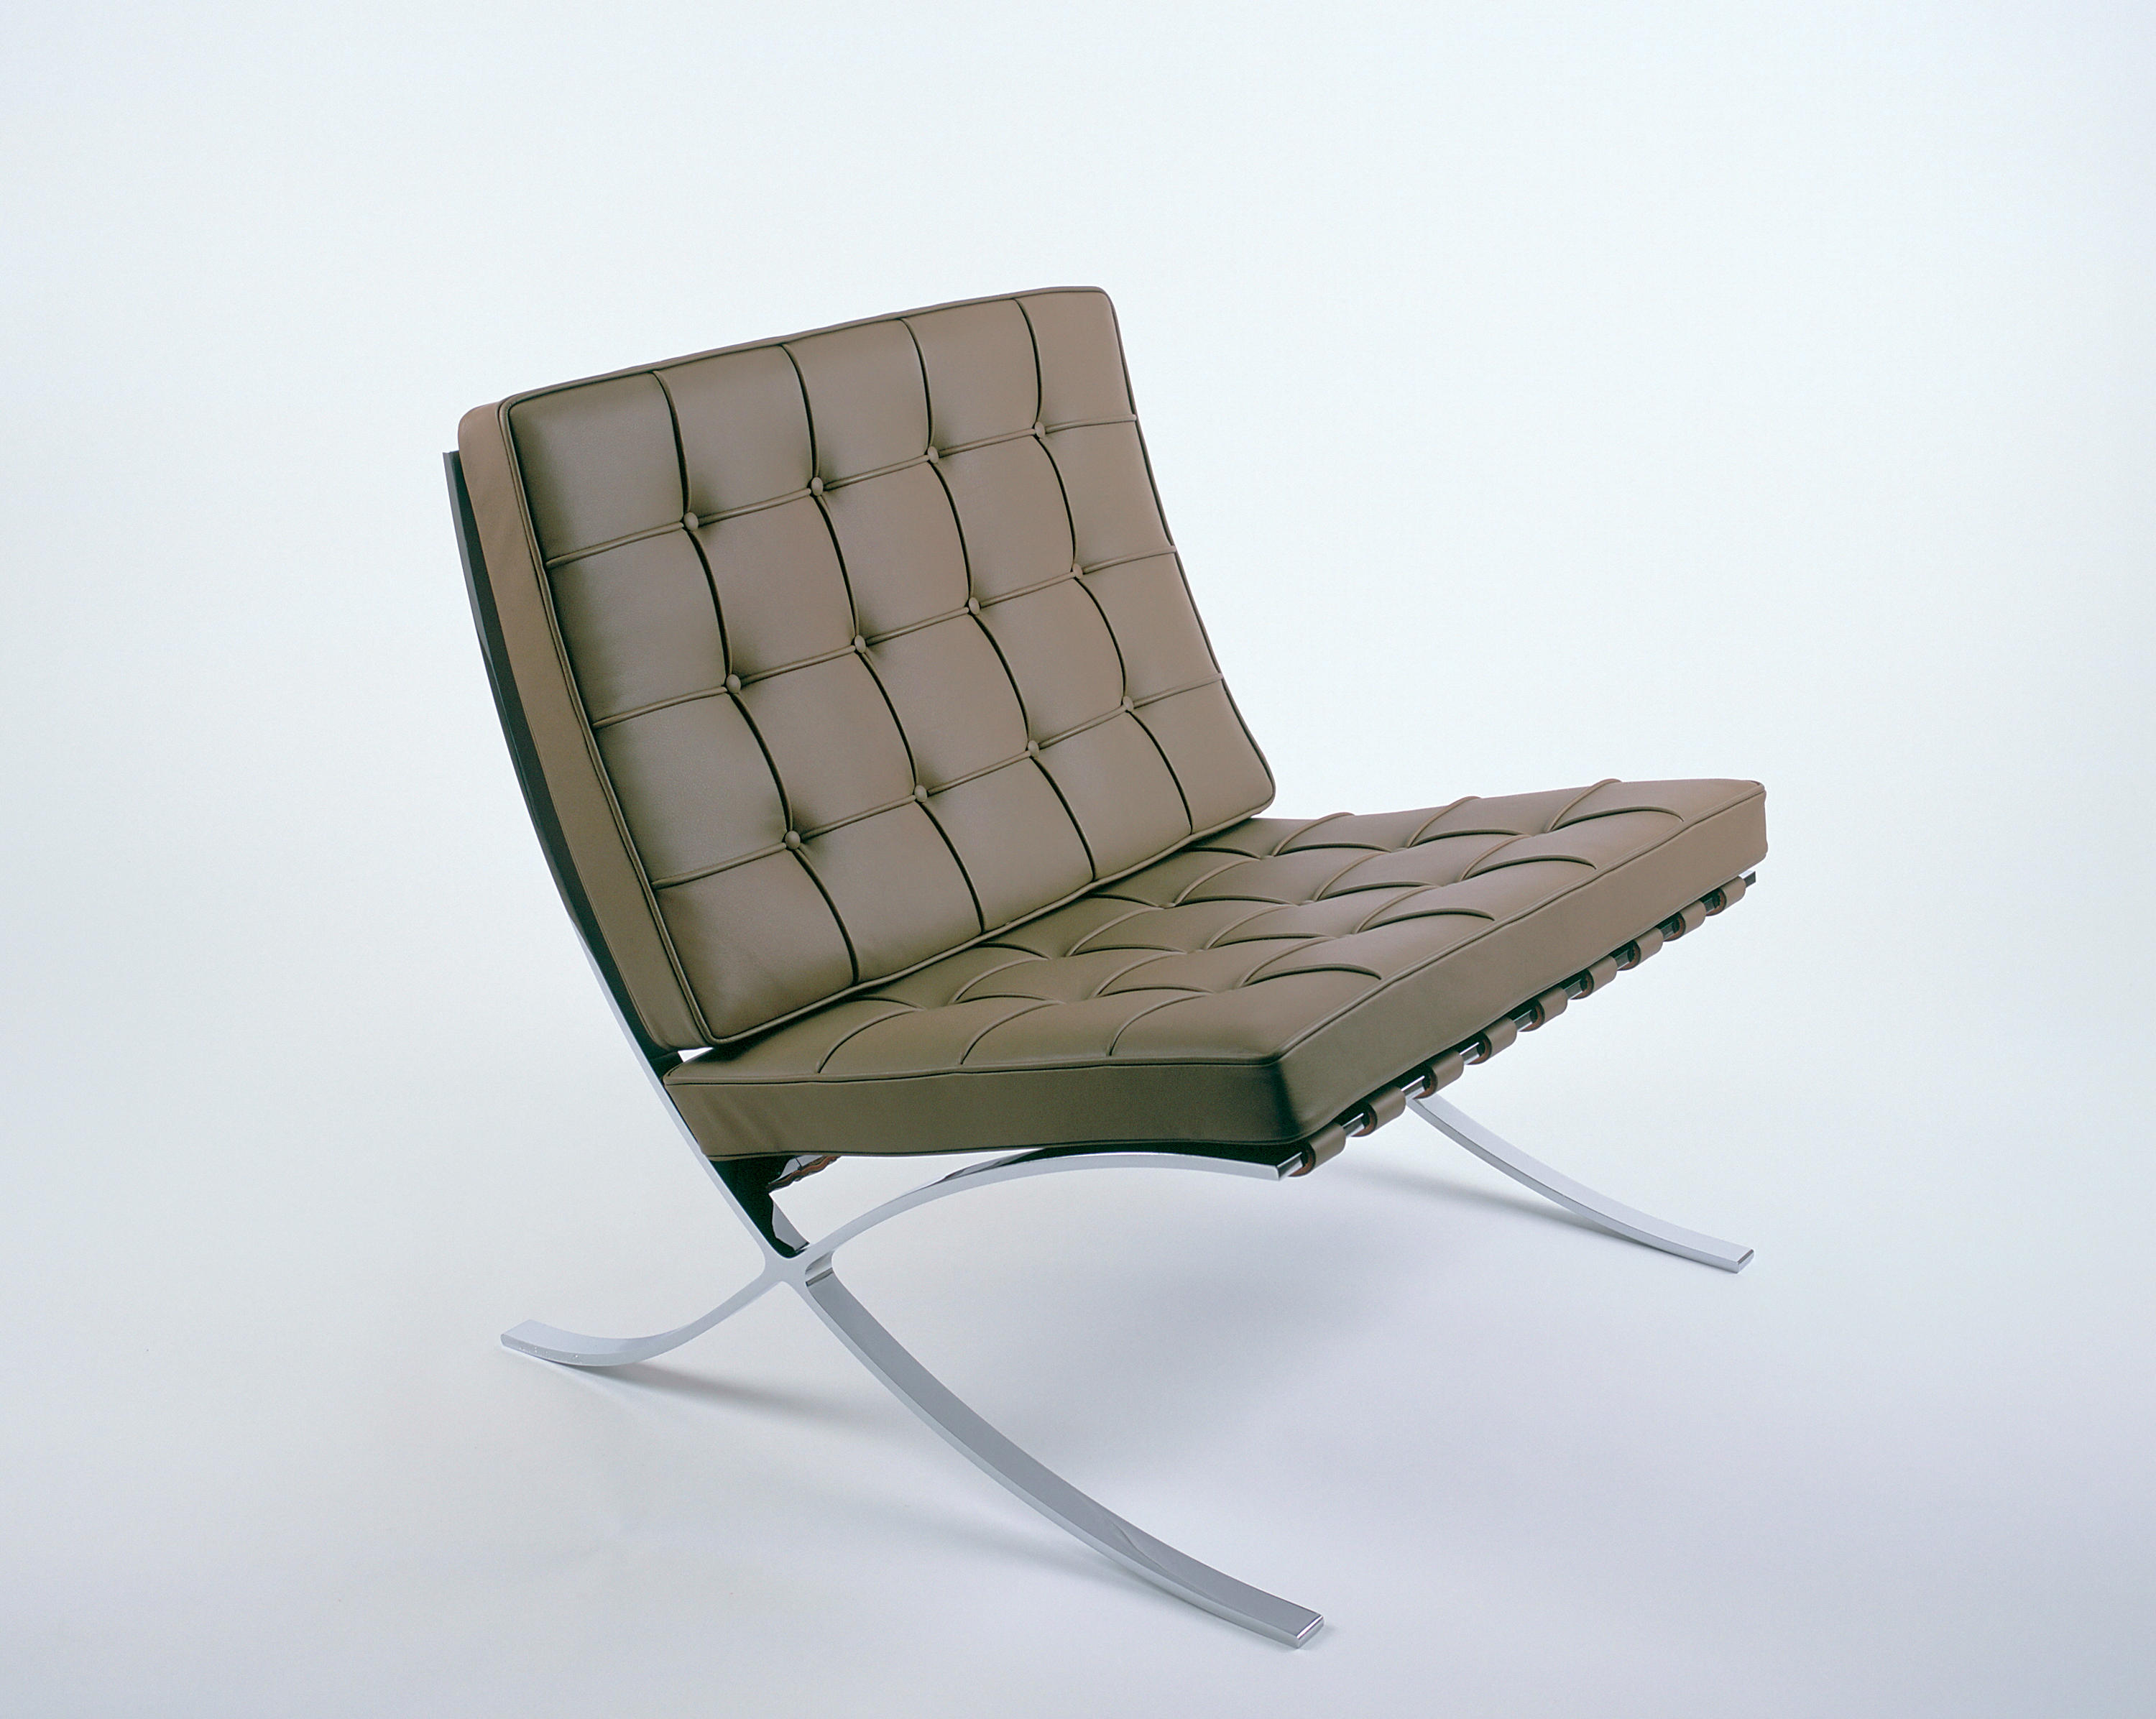 Barcelona Lounge Chair Barcelona Poltrona Poltrone Knoll International Architonic